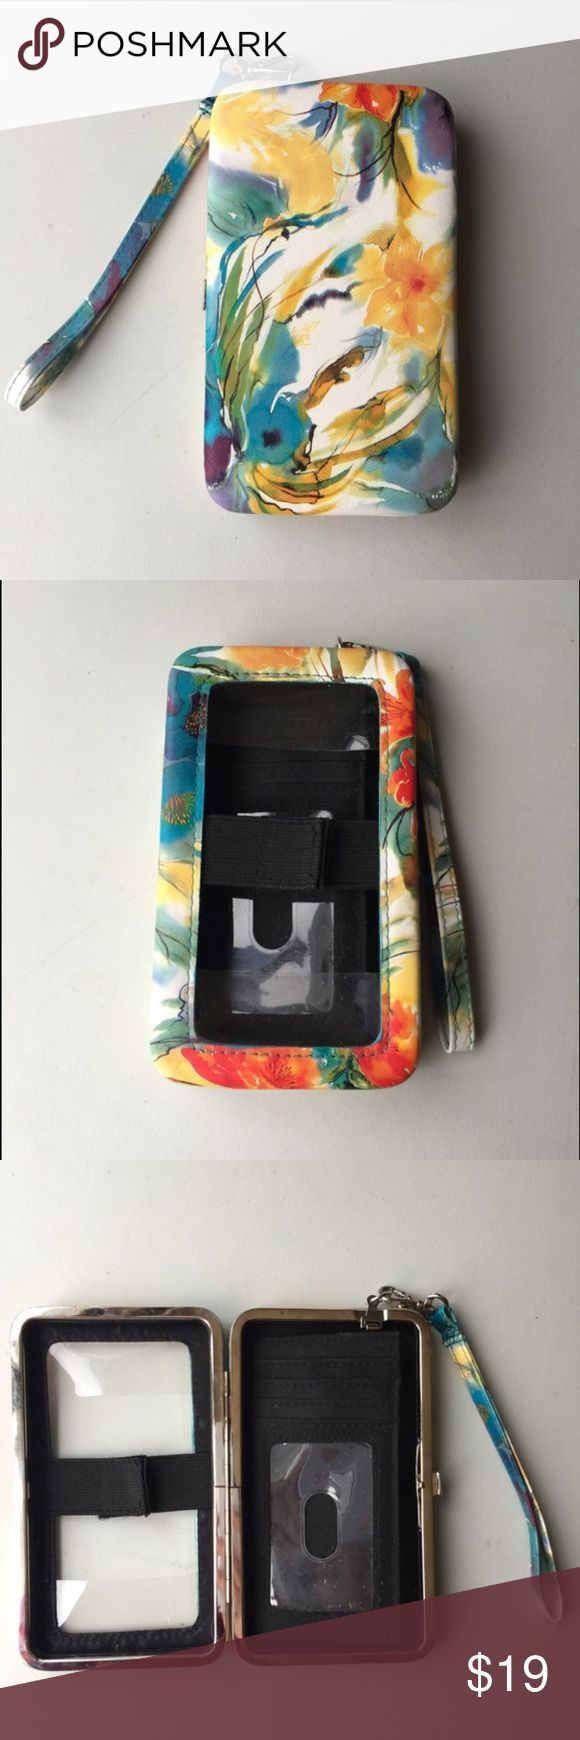 Beautiful colorful tech wristlet This wristlet has a gorgeous watercolor pattern with floral detail. Blue, green, white, yellow, orange, purple, and red. Fits many types of phones with access to the smartphone screen when it is closed. Seems to be shaped for an iPhone, but similar sized phones would work also because it's not precise sizing. Room for cards, ID, and cash as well. Detachable strap. Very pretty case wallet for everyday use! Tags: colored, button, cell phone, flower, gorgeous…